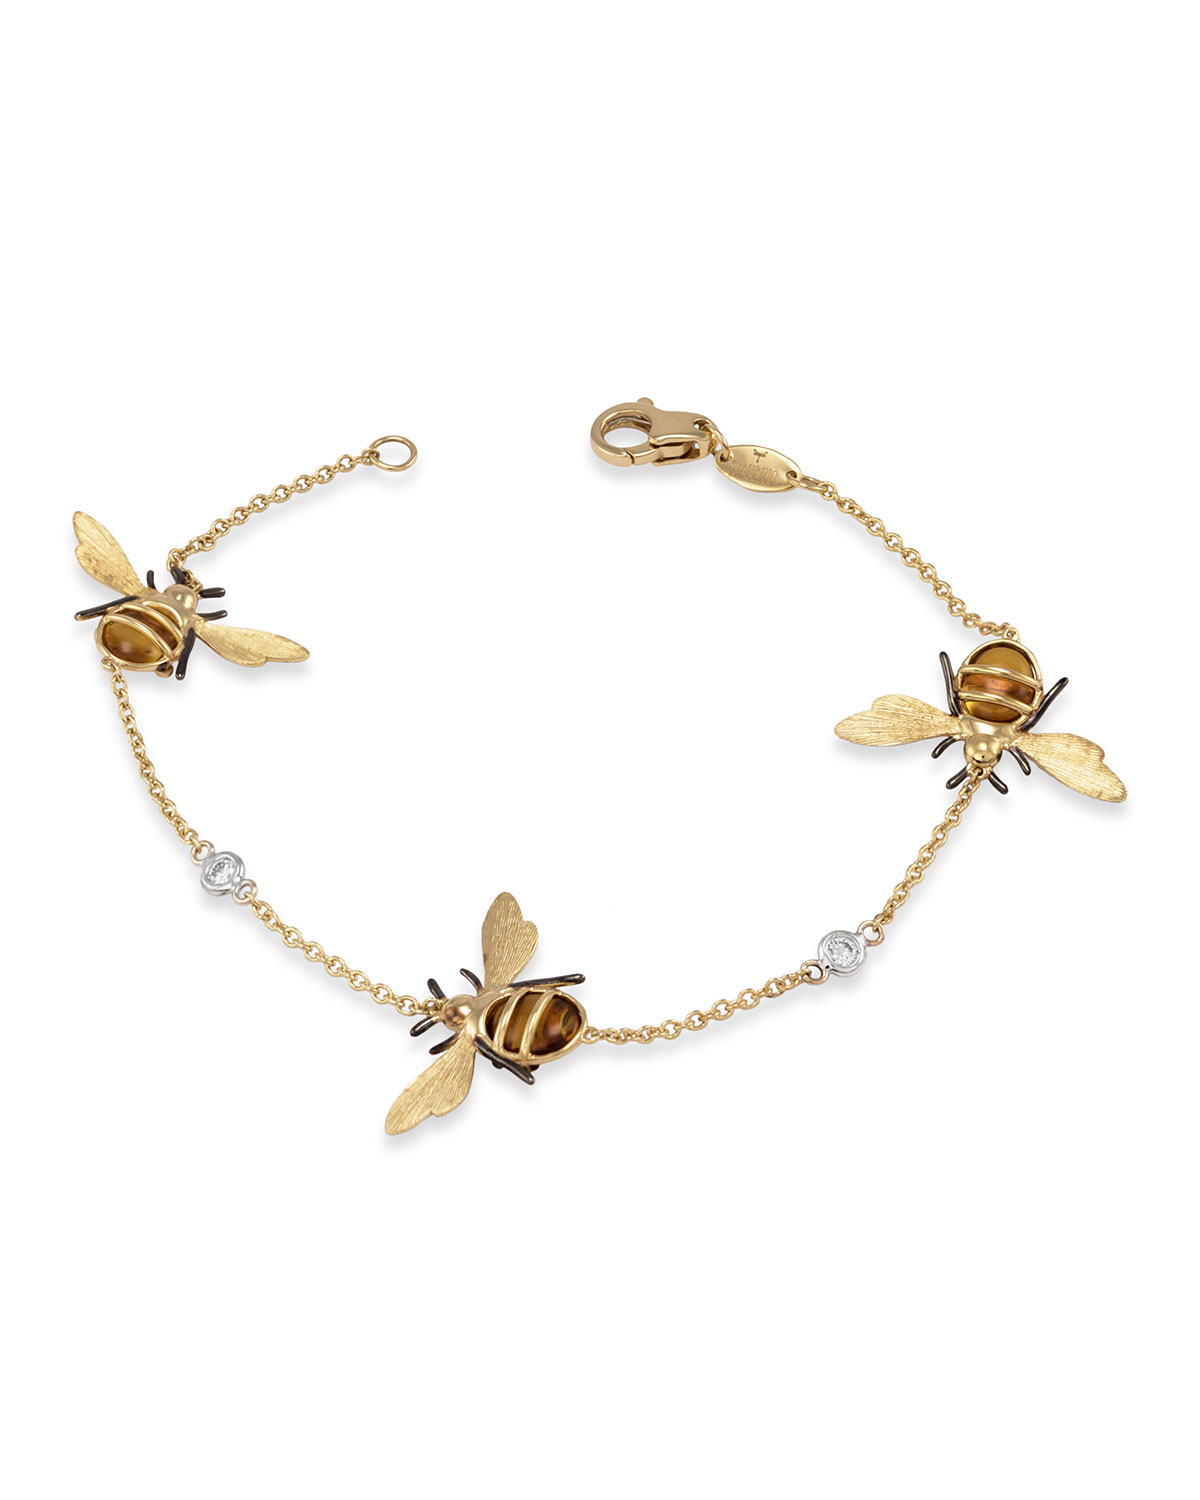 Staurino 18K Yellow Gold Citrine Bee Chain Bracelet